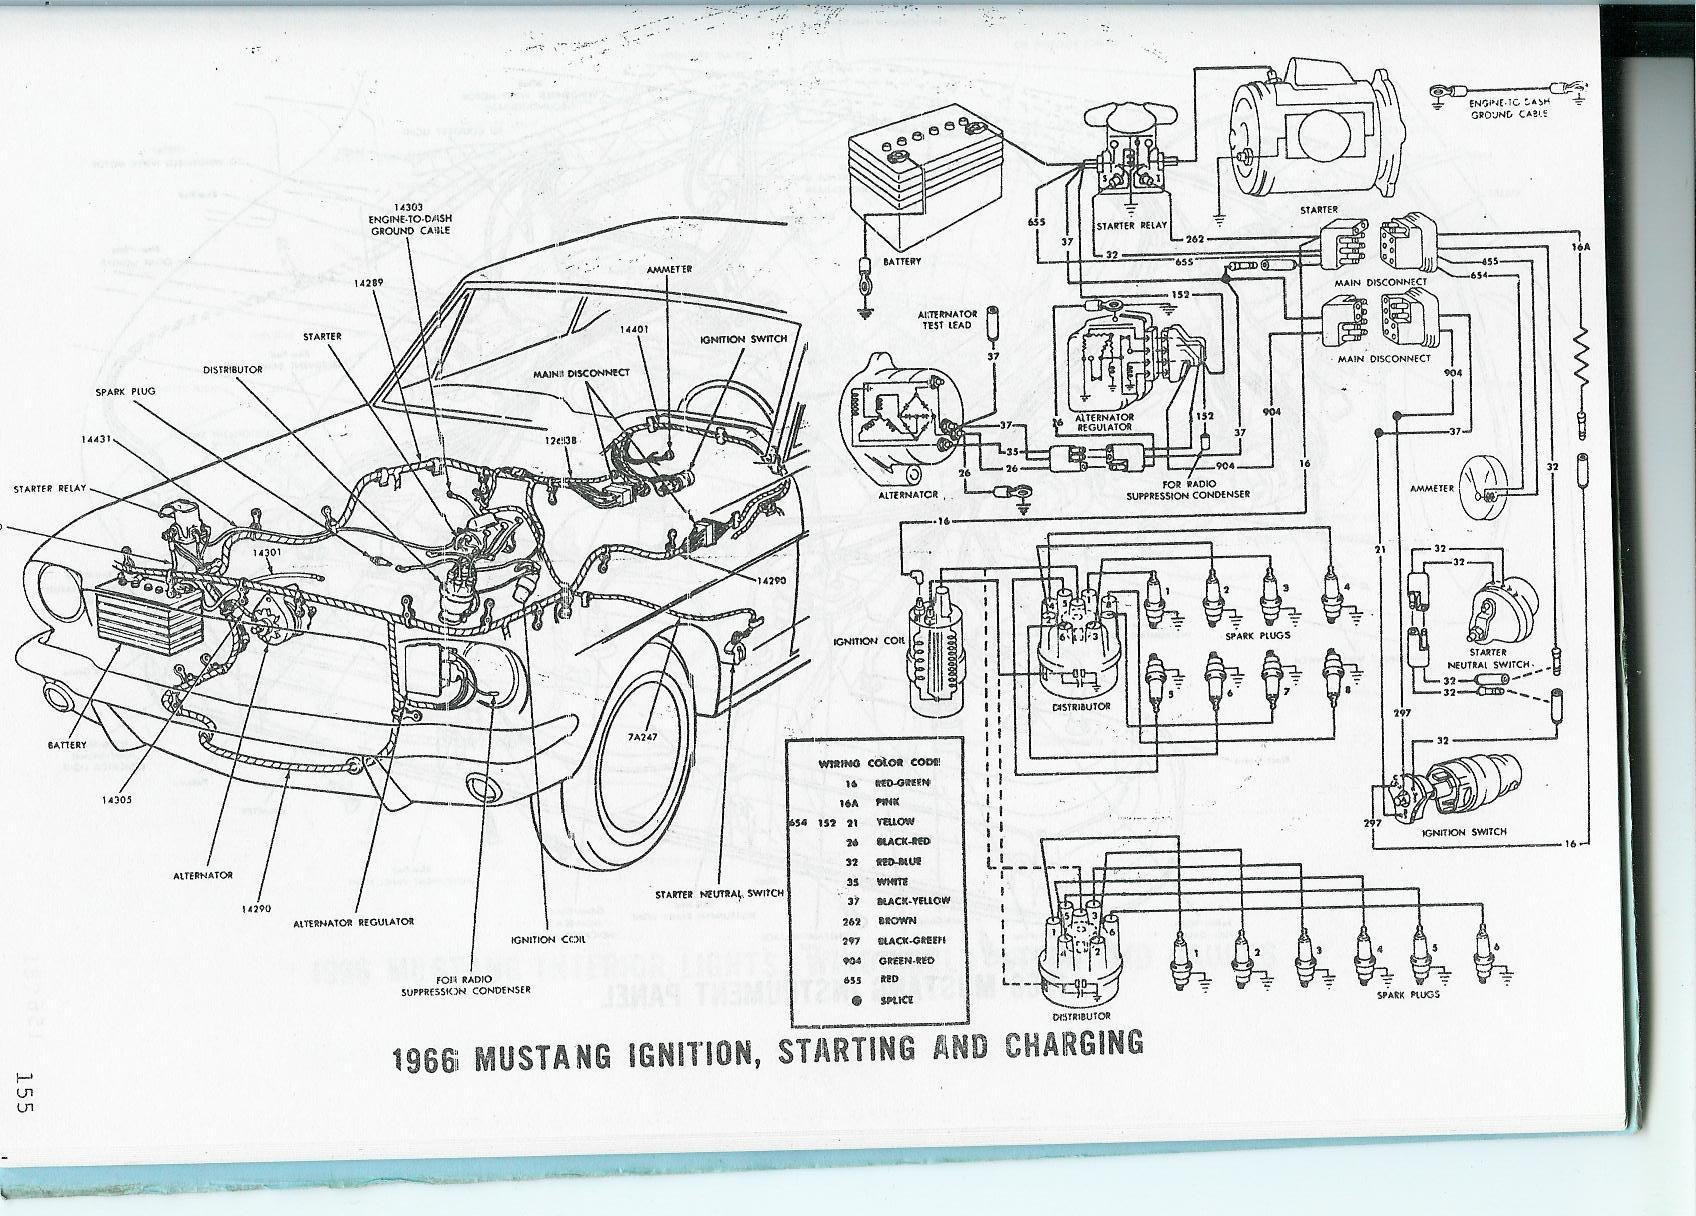 59455d1232487549 64 1 2 wiring problems 66 ignition starting chargimg 1966 mustang wiring diagrams readingrat net 1966 mustang radio wiring diagram at bakdesigns.co